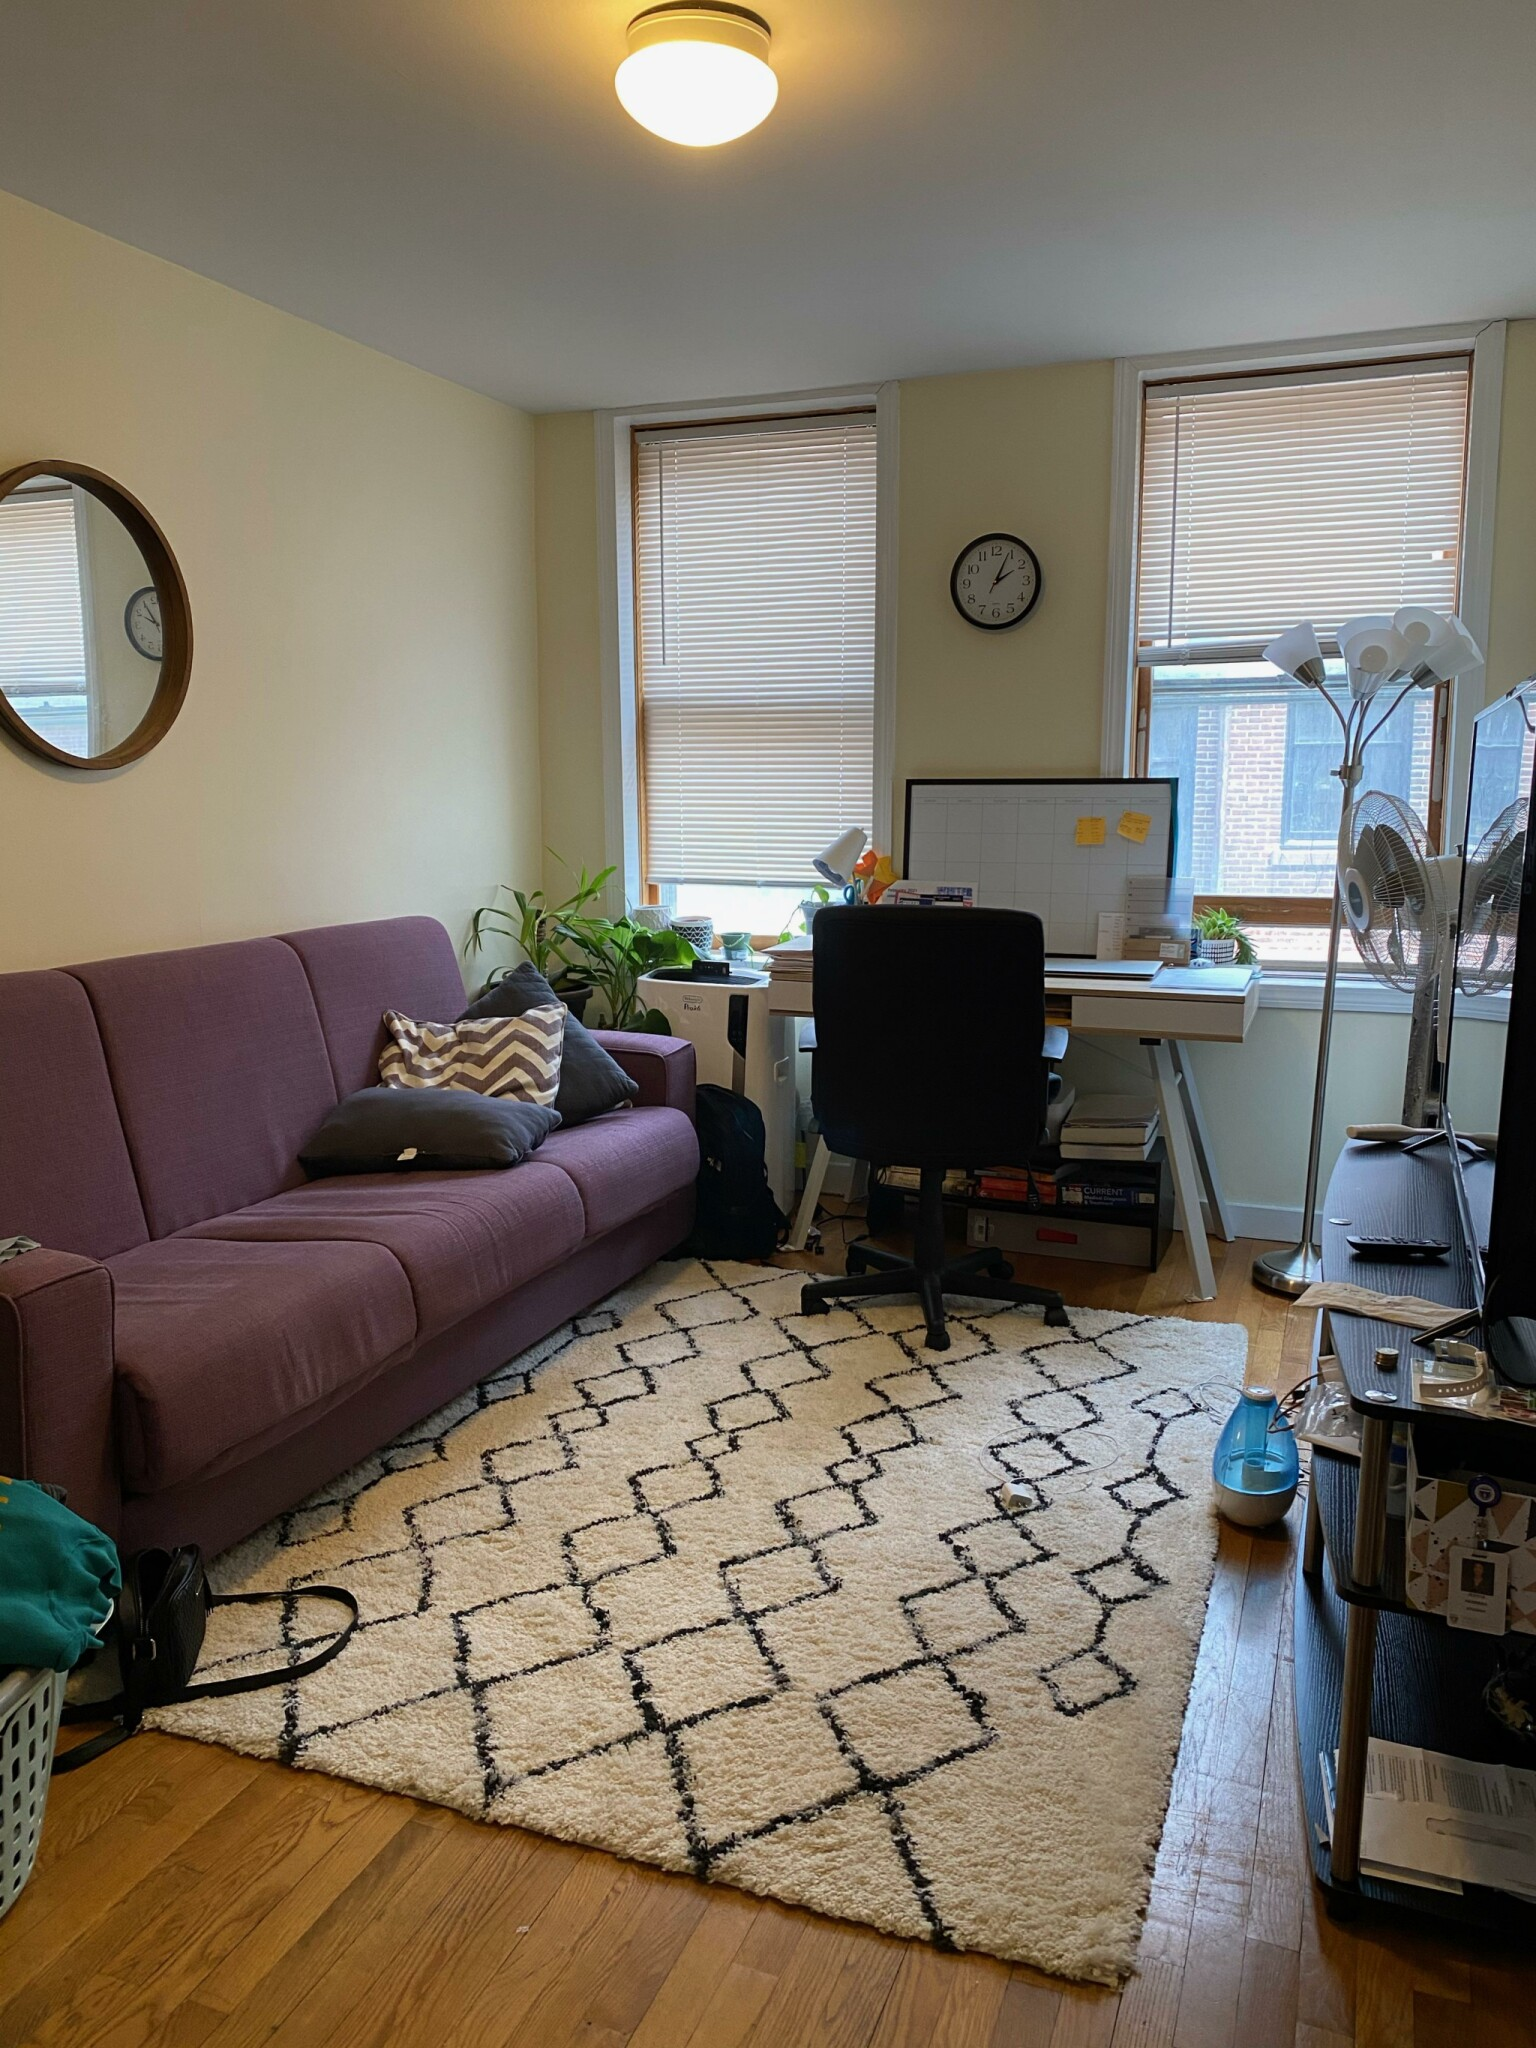 2 Beds, 1 Bath apartment in Boston, Beacon Hill for $2,900